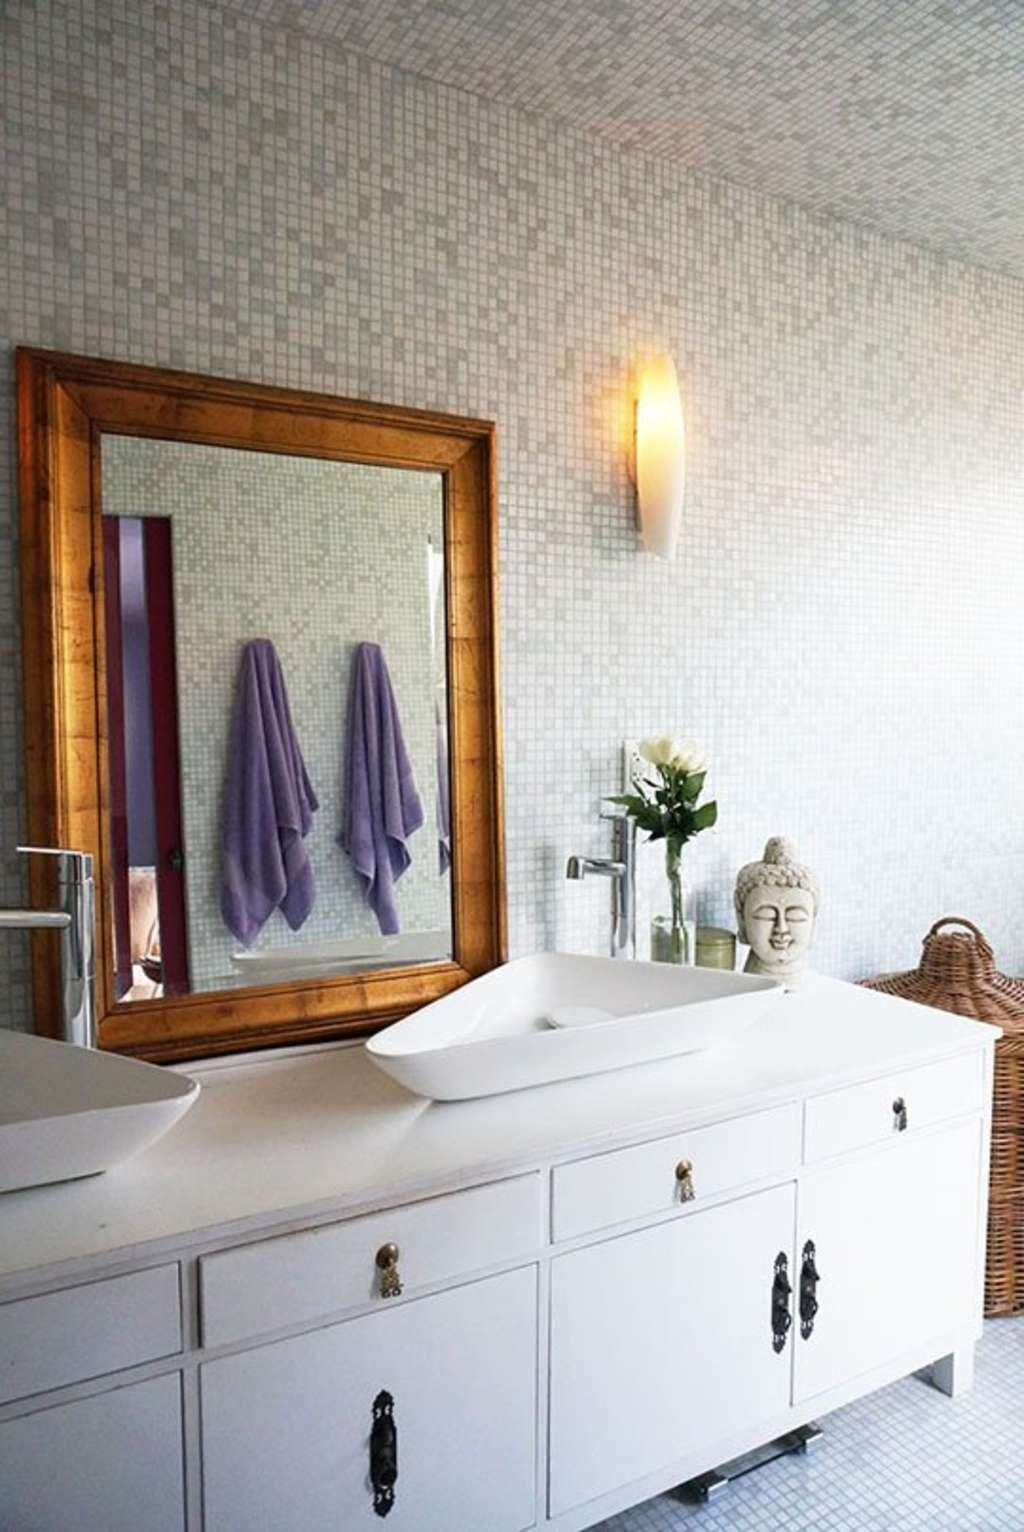 Bathroom Decorating Ideas: 5 Ways to Make Any Bathroom Feel More Spa ...